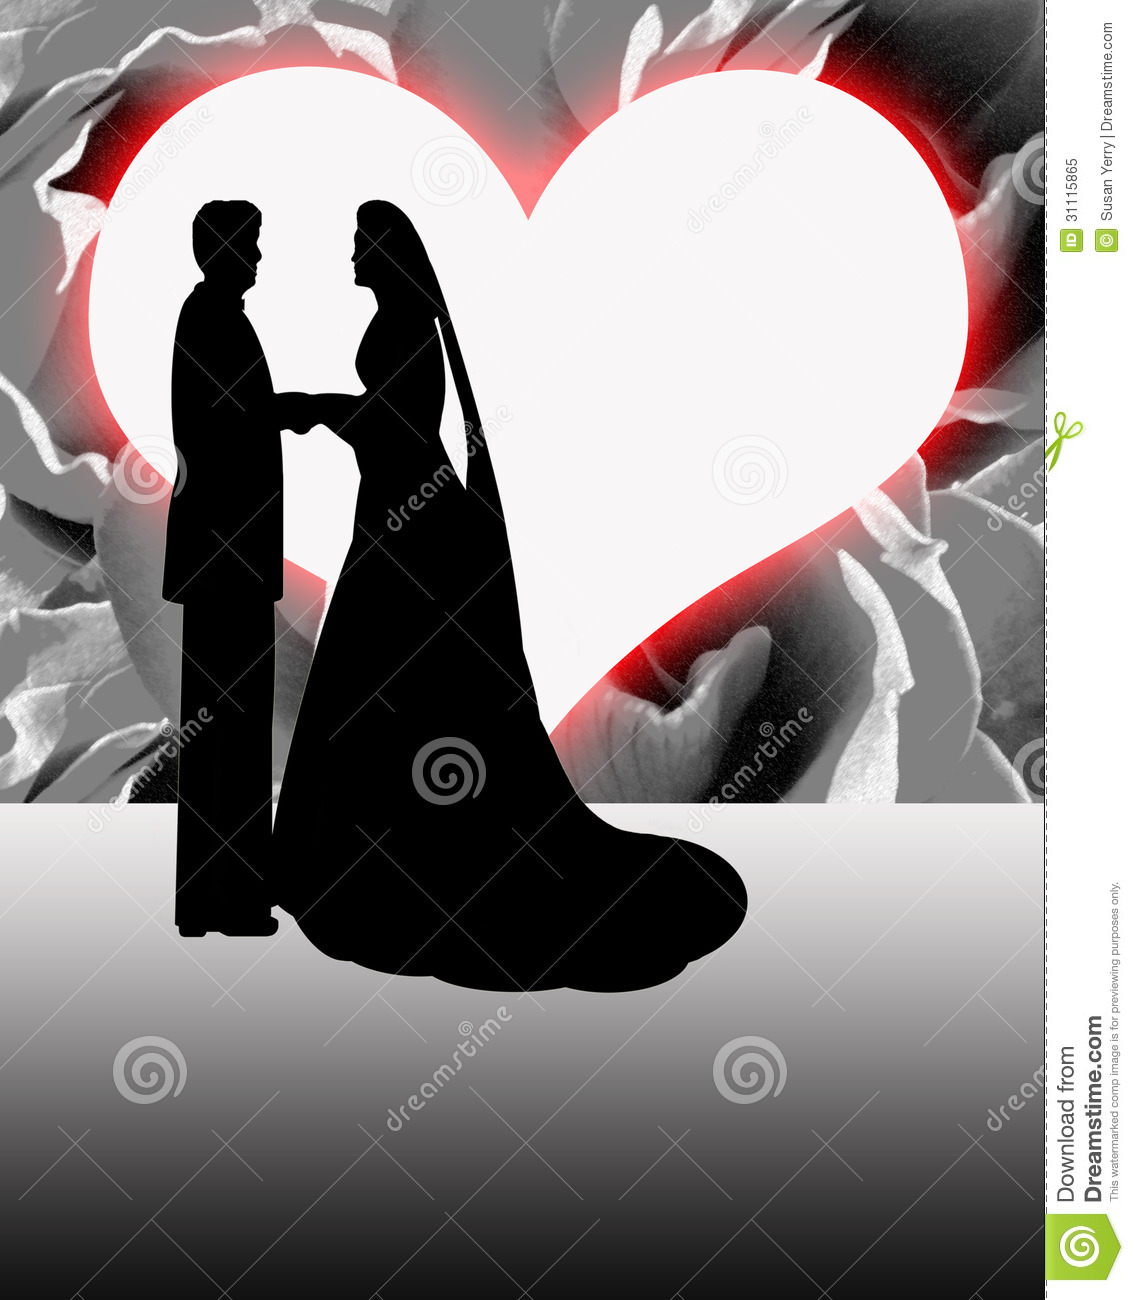 Silhouette Bride And Groom Heart Shaped Moon Royalty Free Stock Photo